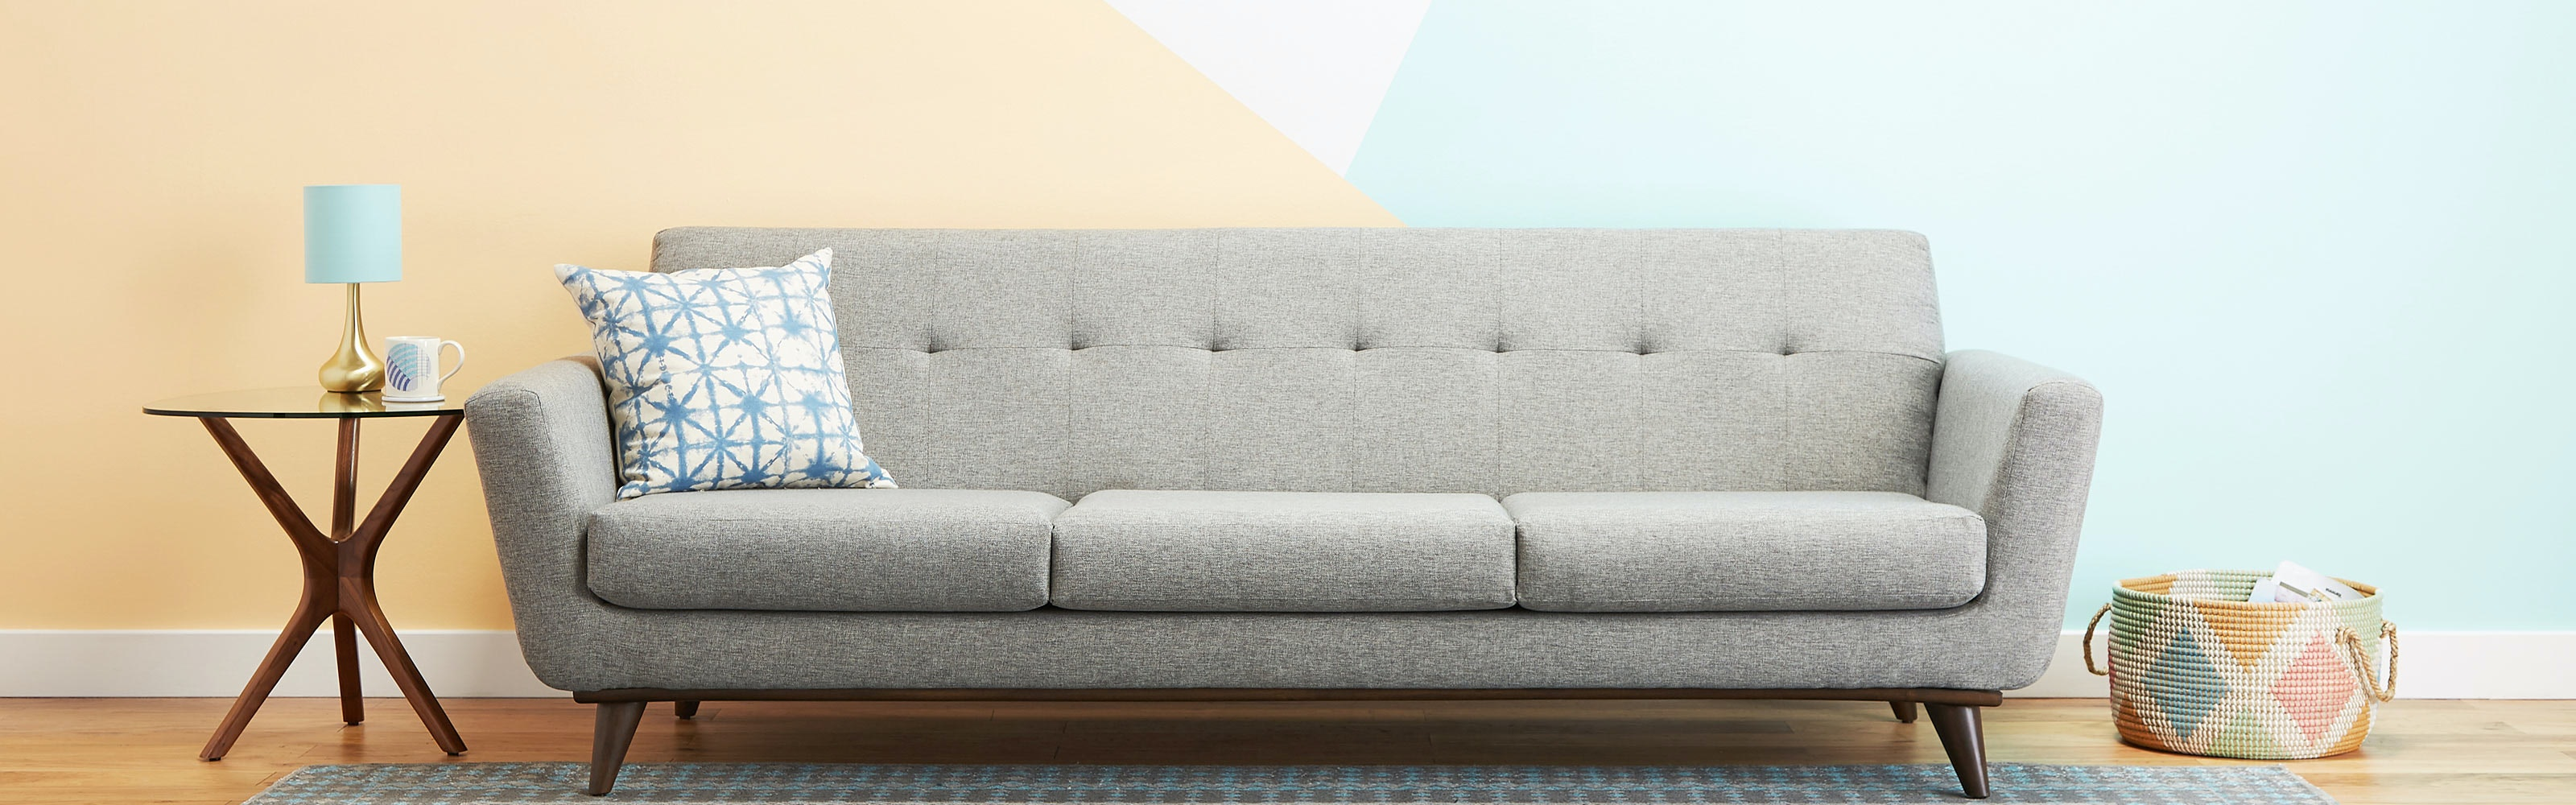 Grey Sofa In Lounge Sofas Couches Buy A Customized Sofa Joybird